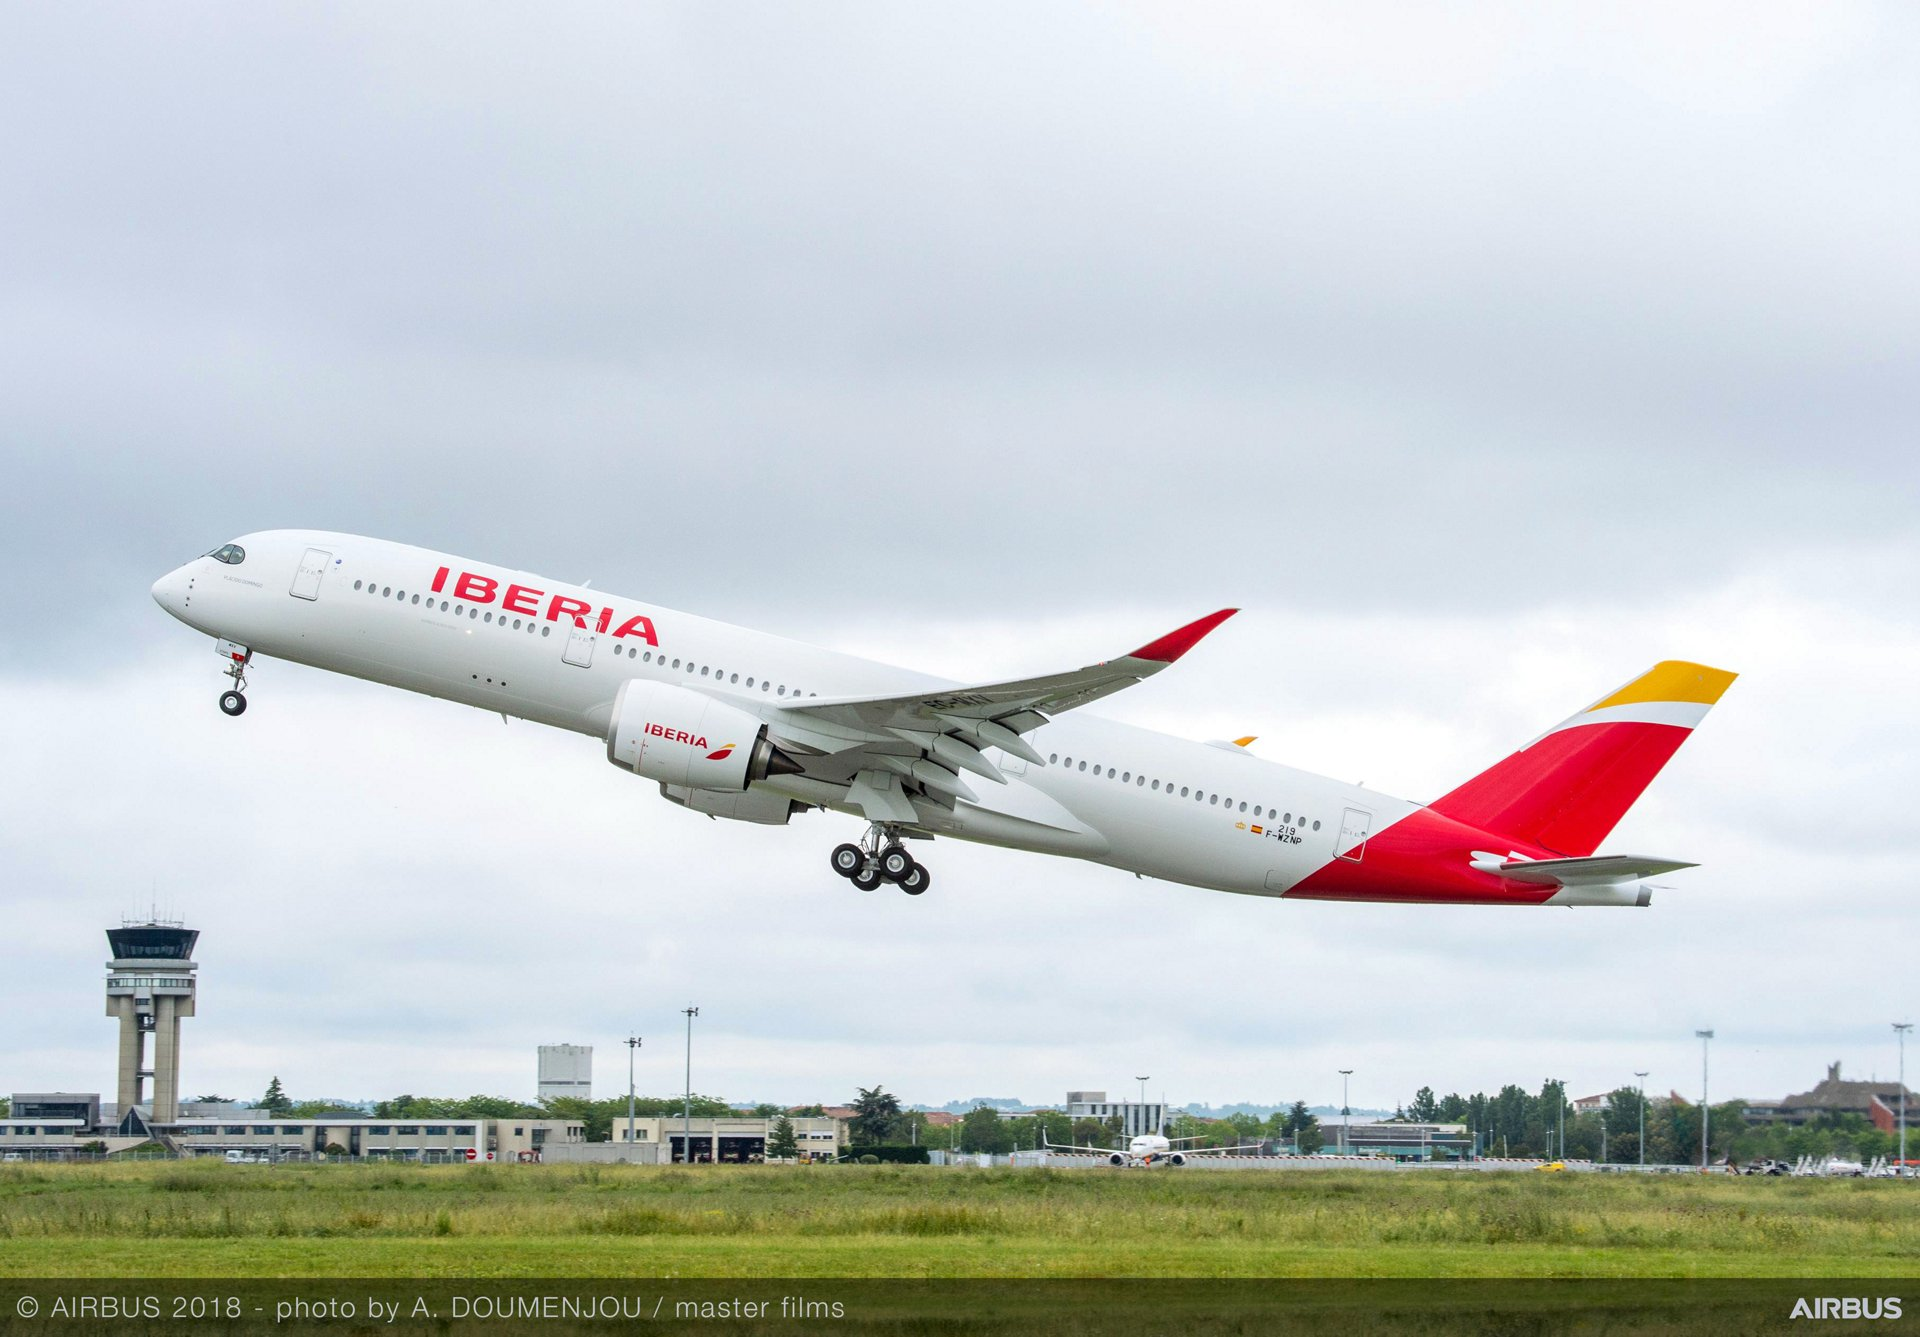 Iberia's first A350-900 – a 280 tonne MTOW (maximum takeoff weight) version delivered 26 June 2018 – will join more than 170 A350 XWBs already in commercial service with operators around the globe